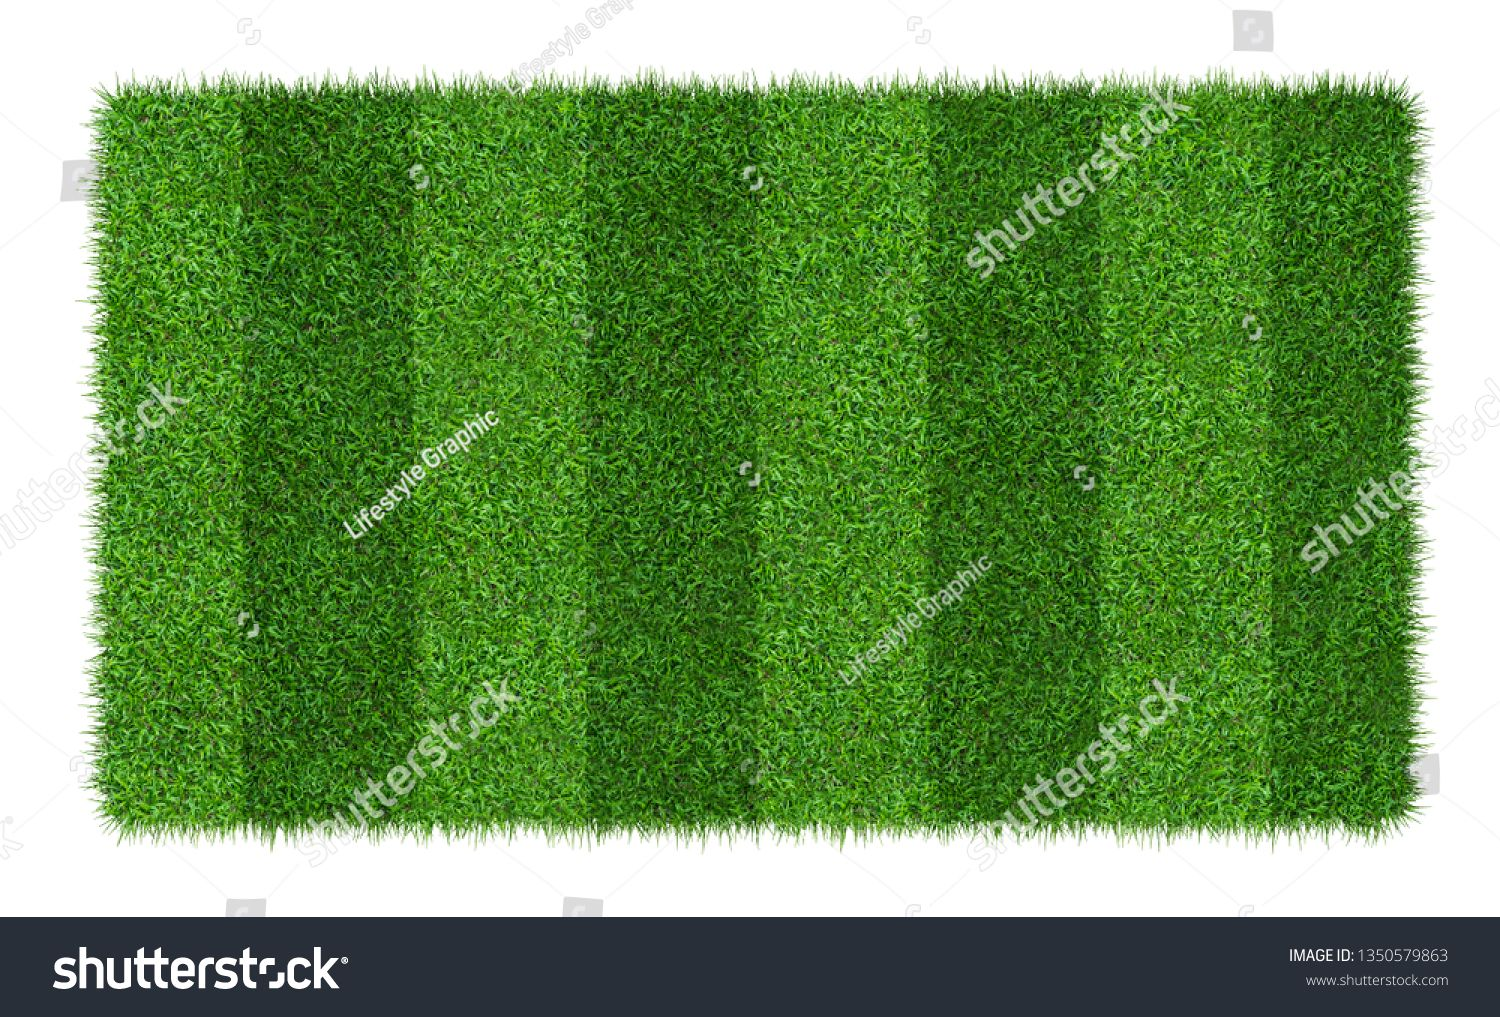 Green Grass Texture Background For Soccer And Football Sports Green Grass Field Pattern And Texture Isolated On Grass Textures Textured Background Green Grass